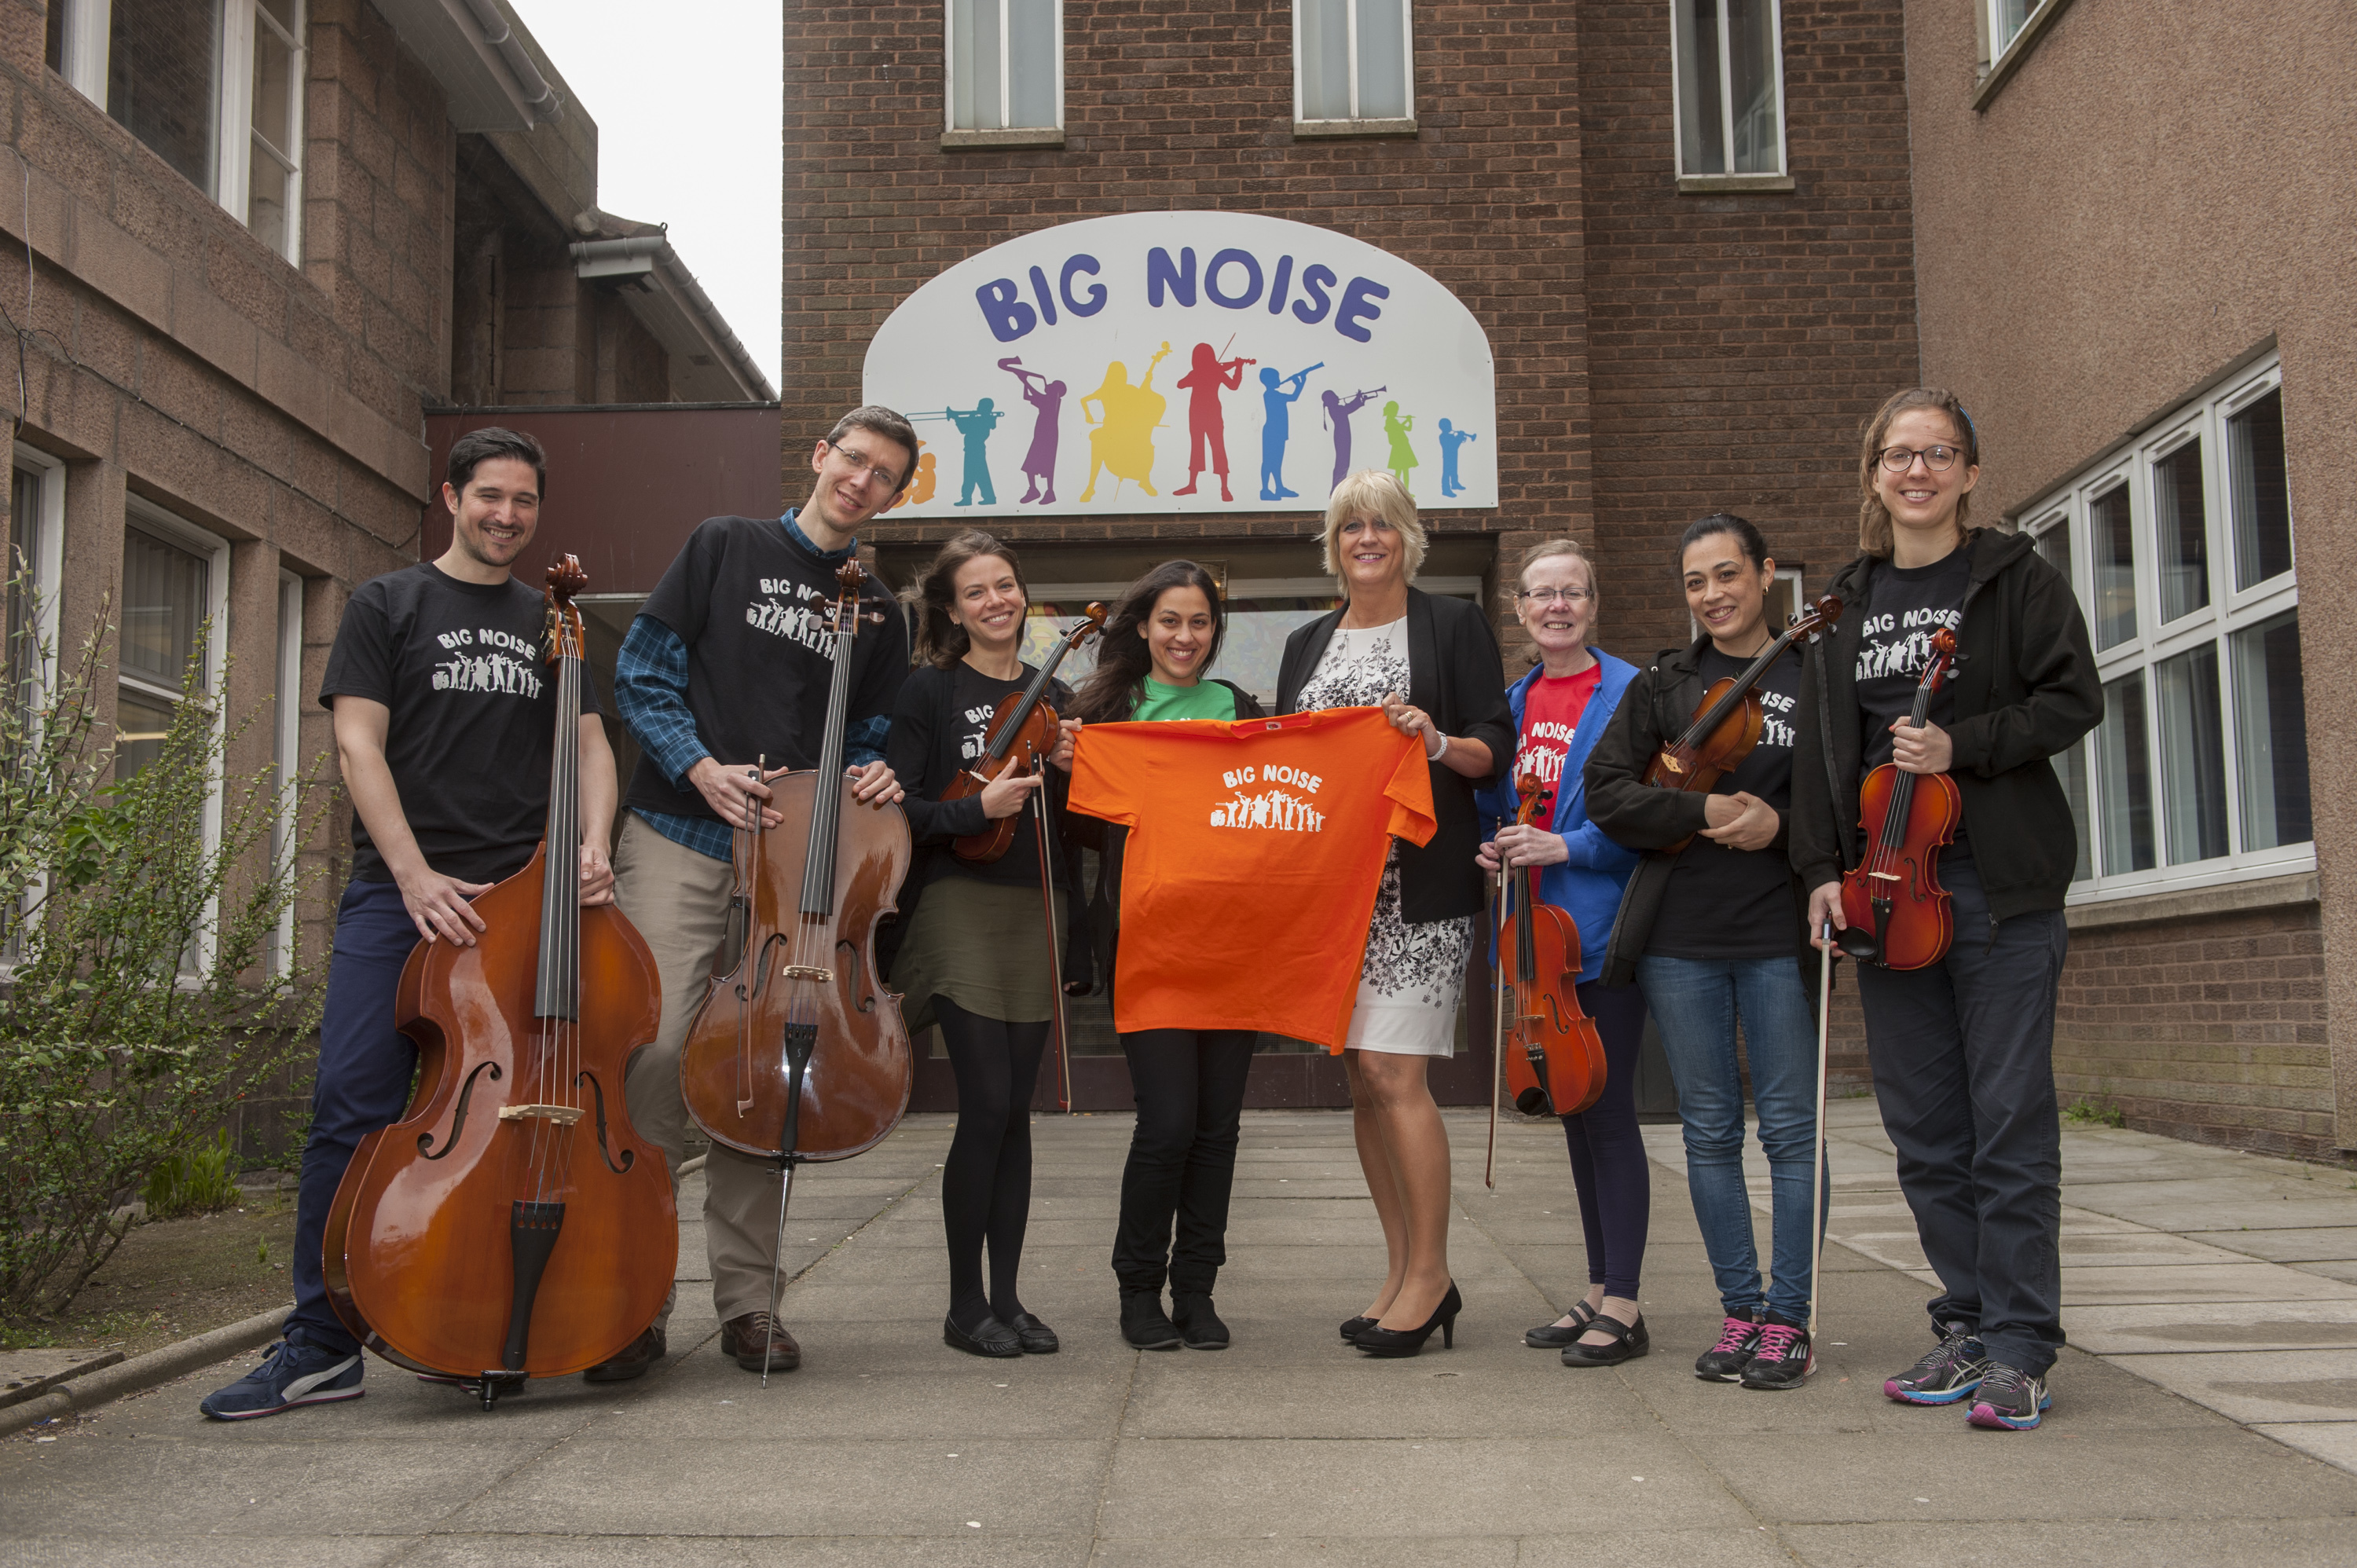 Big Noise in Torry - Councillor Angela Taylor greets the new teachers 19th May 2015  Photograph by marc marnie  World Rights